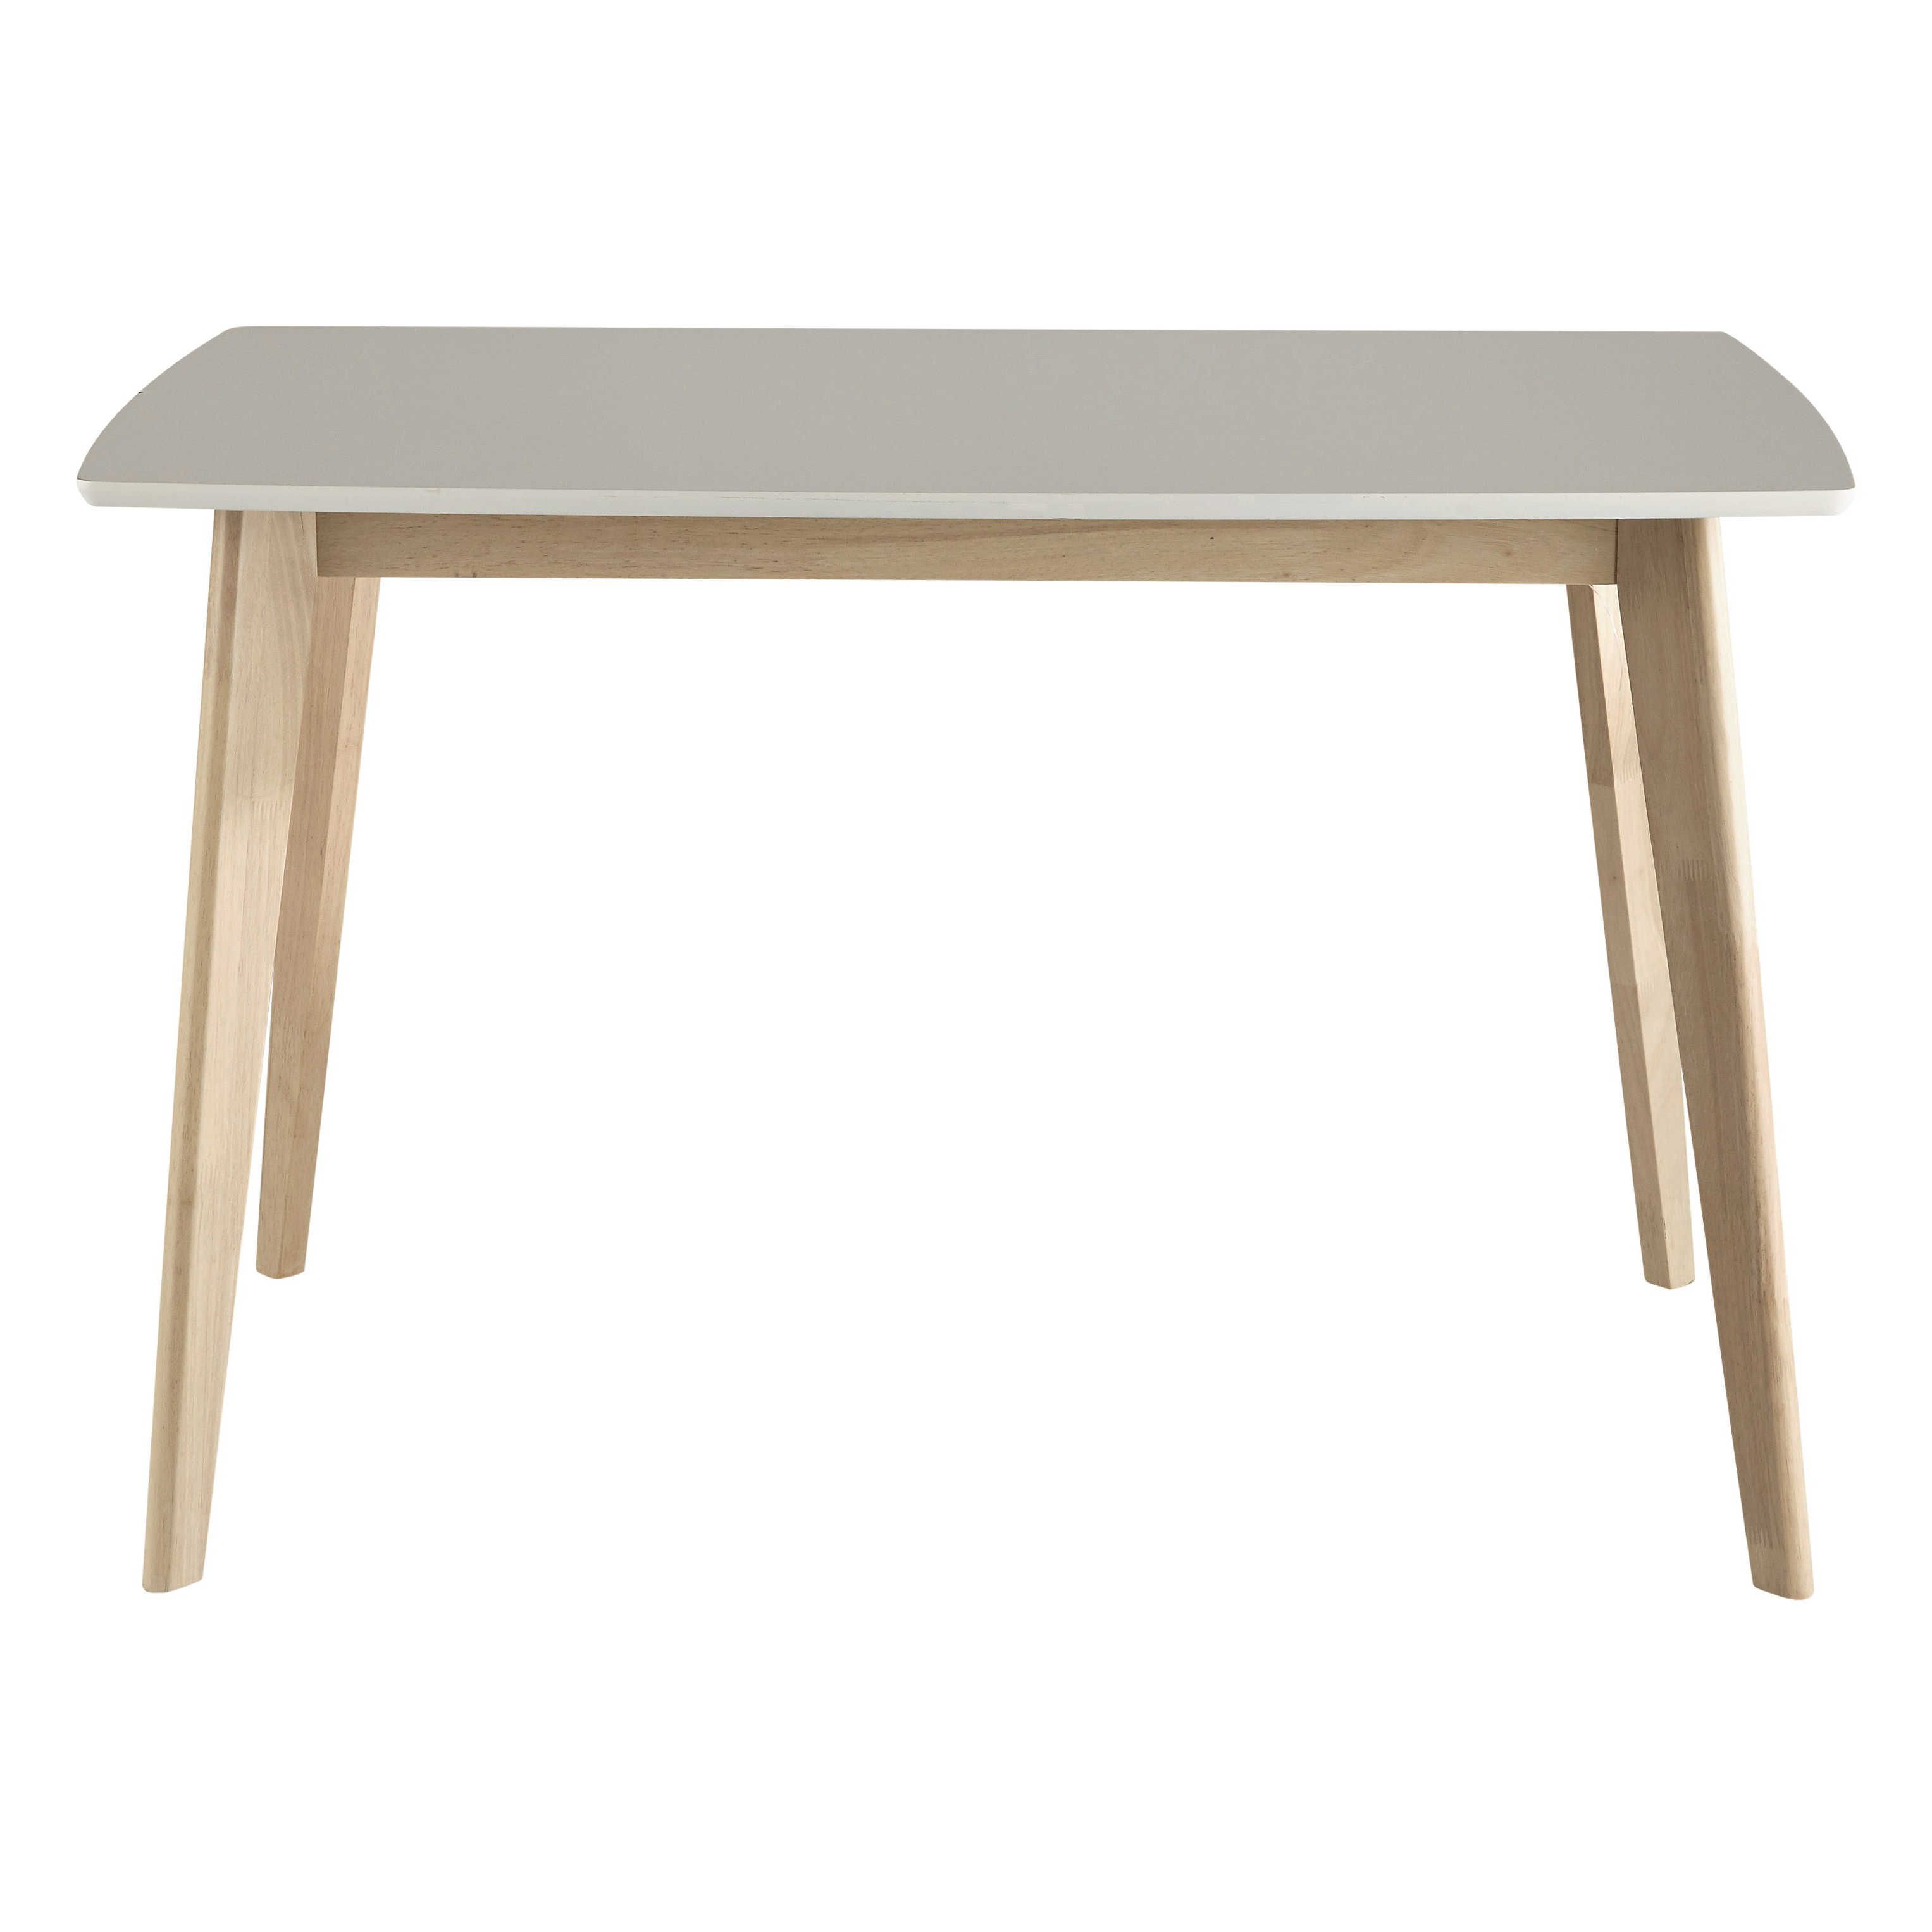 Discover Maisons Du Mondeu0027s Wooden Dining Table In White W Browse A Varied  Range Of Stylish, Affordable Furniture To Add A Unique Touch To Your Home.